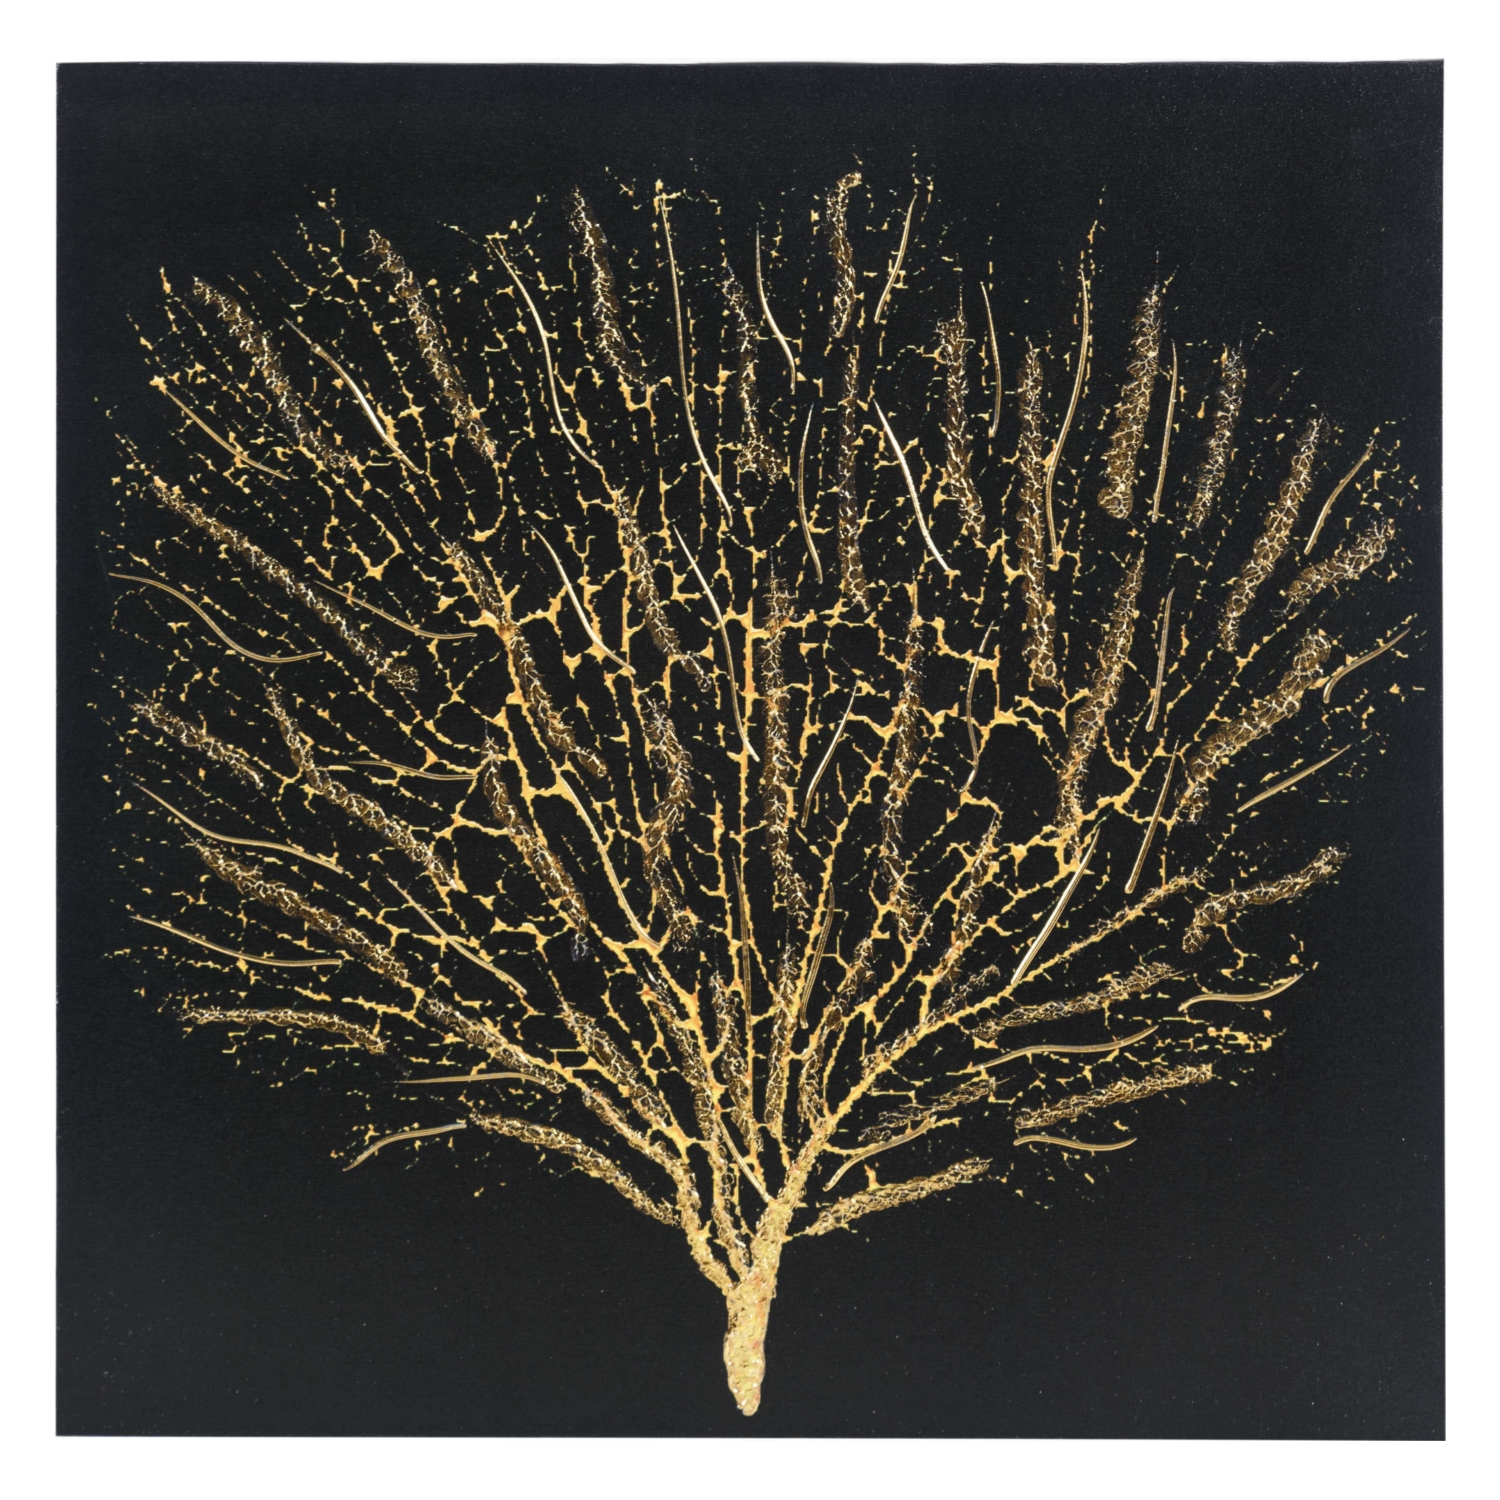 SHINY TREE BLACK KABARTMA KANVAS TABLO 80X80 CM